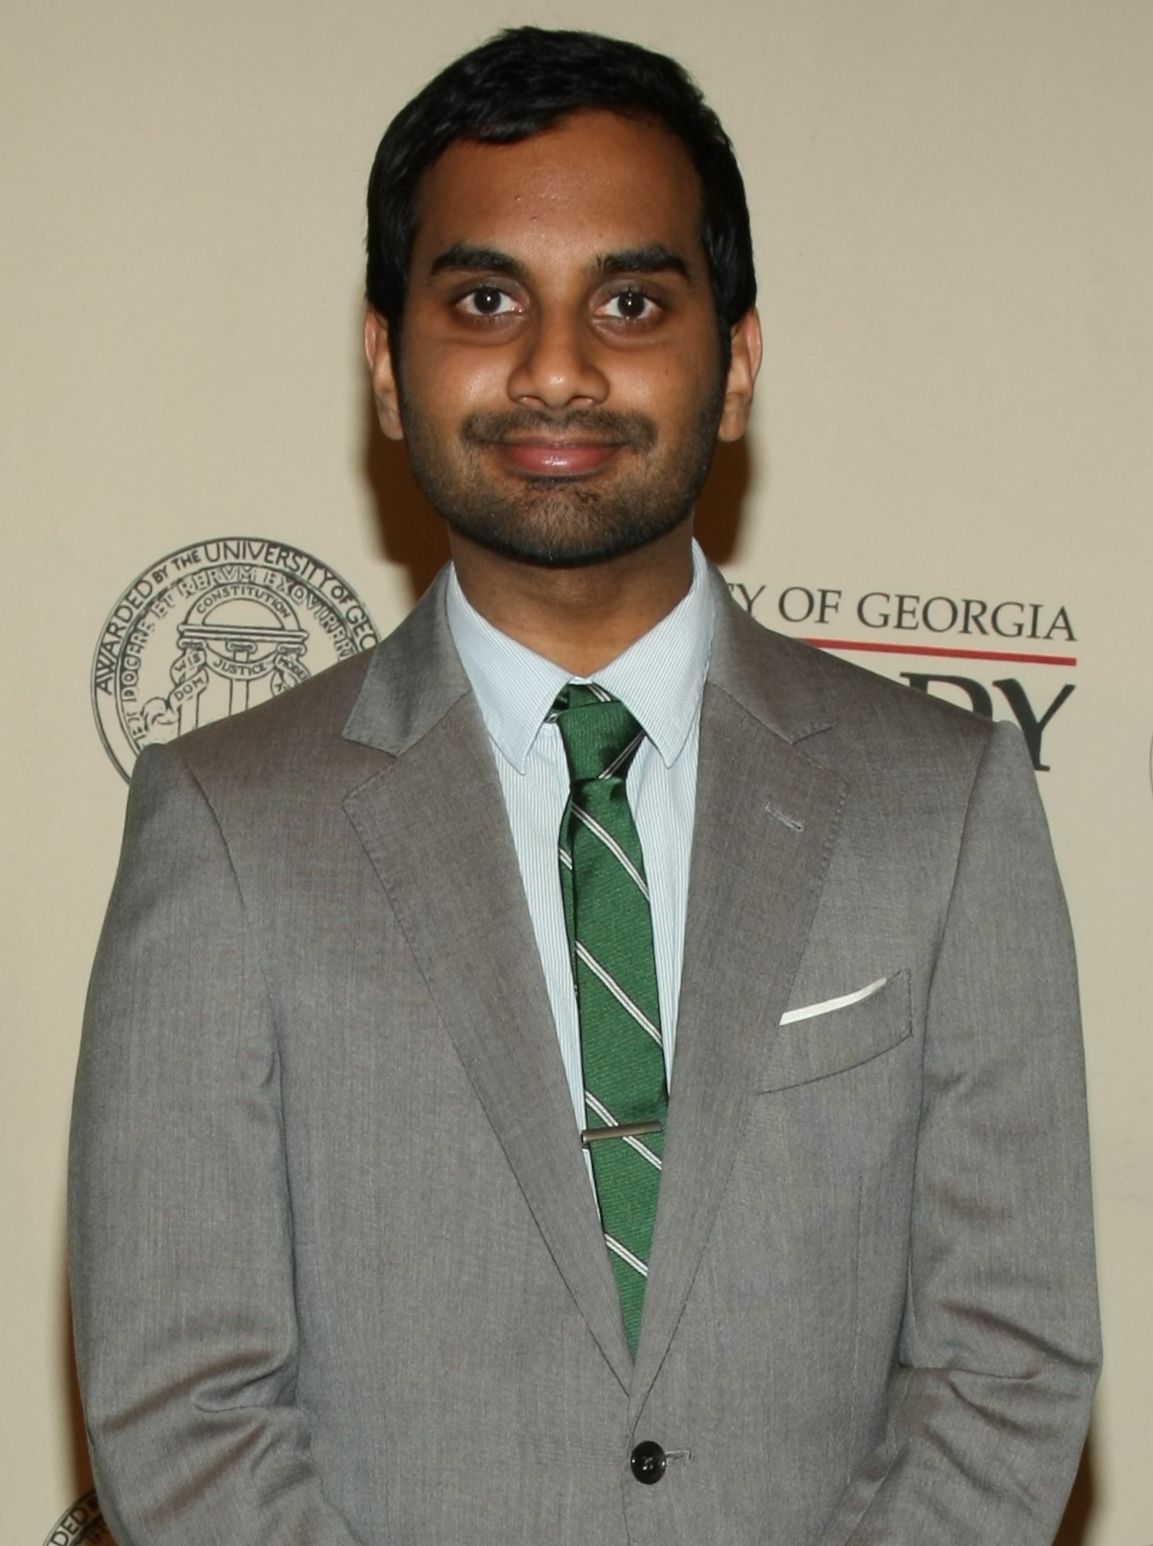 The 35-year old son of father Shoukath Ansari and mother Fatima Ansari, 170 cm tall Aziz Ansari in 2018 photo